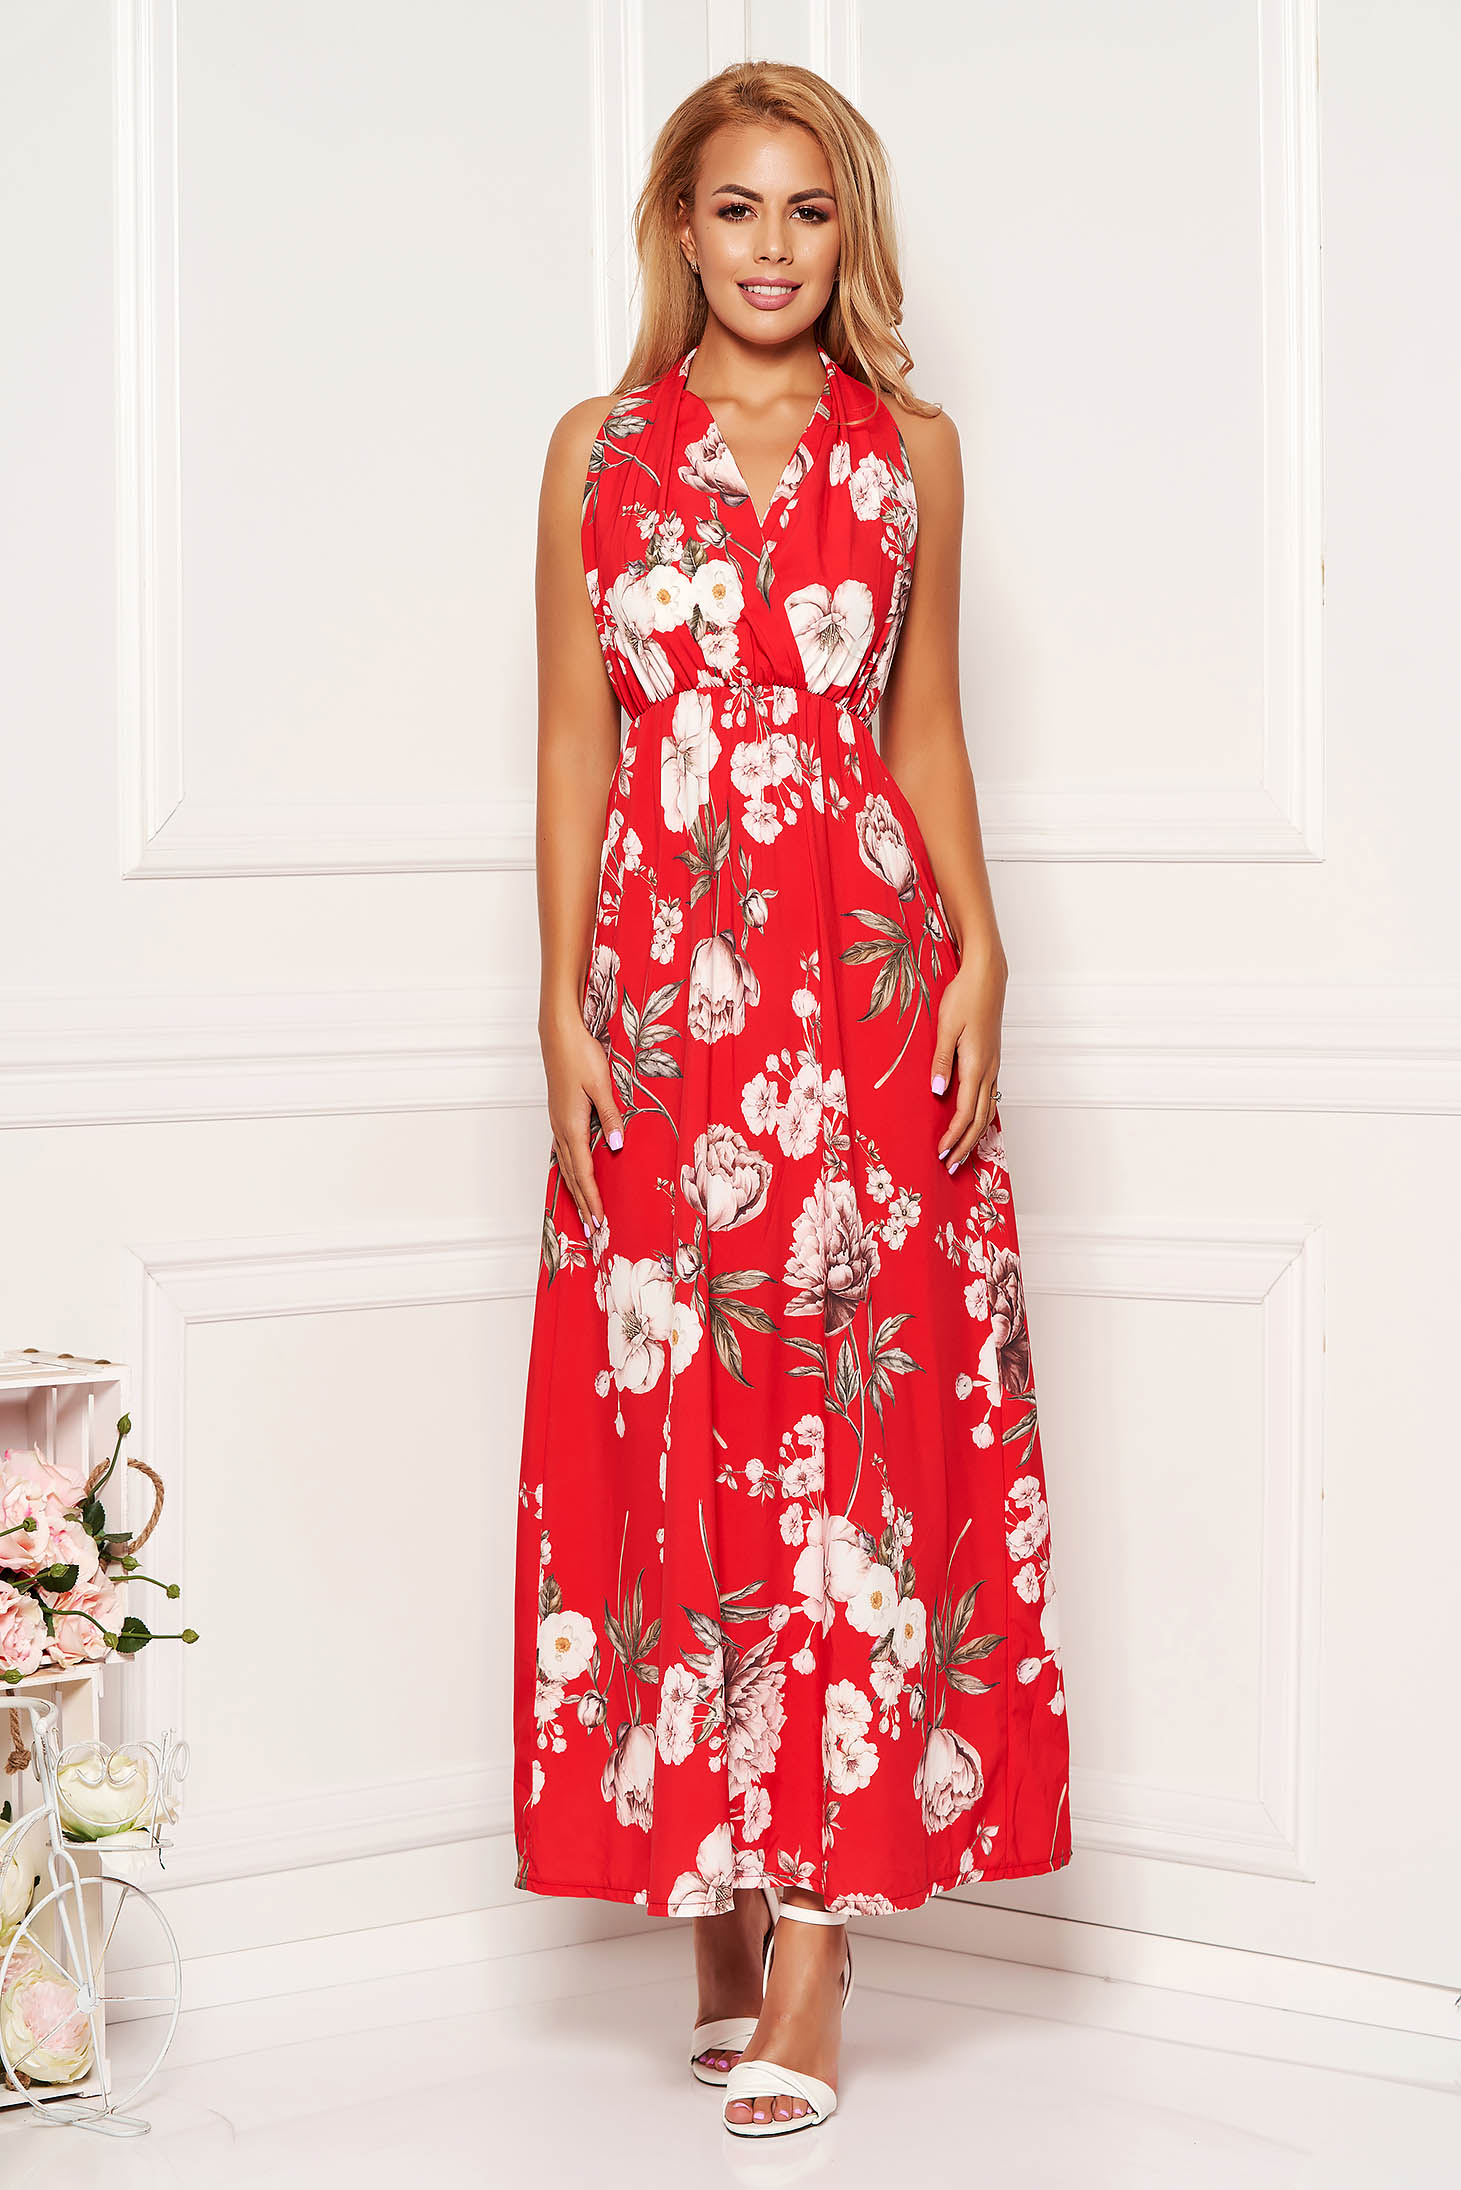 Red dress daily cloche sleeveless with elastic waist bare back with floral print